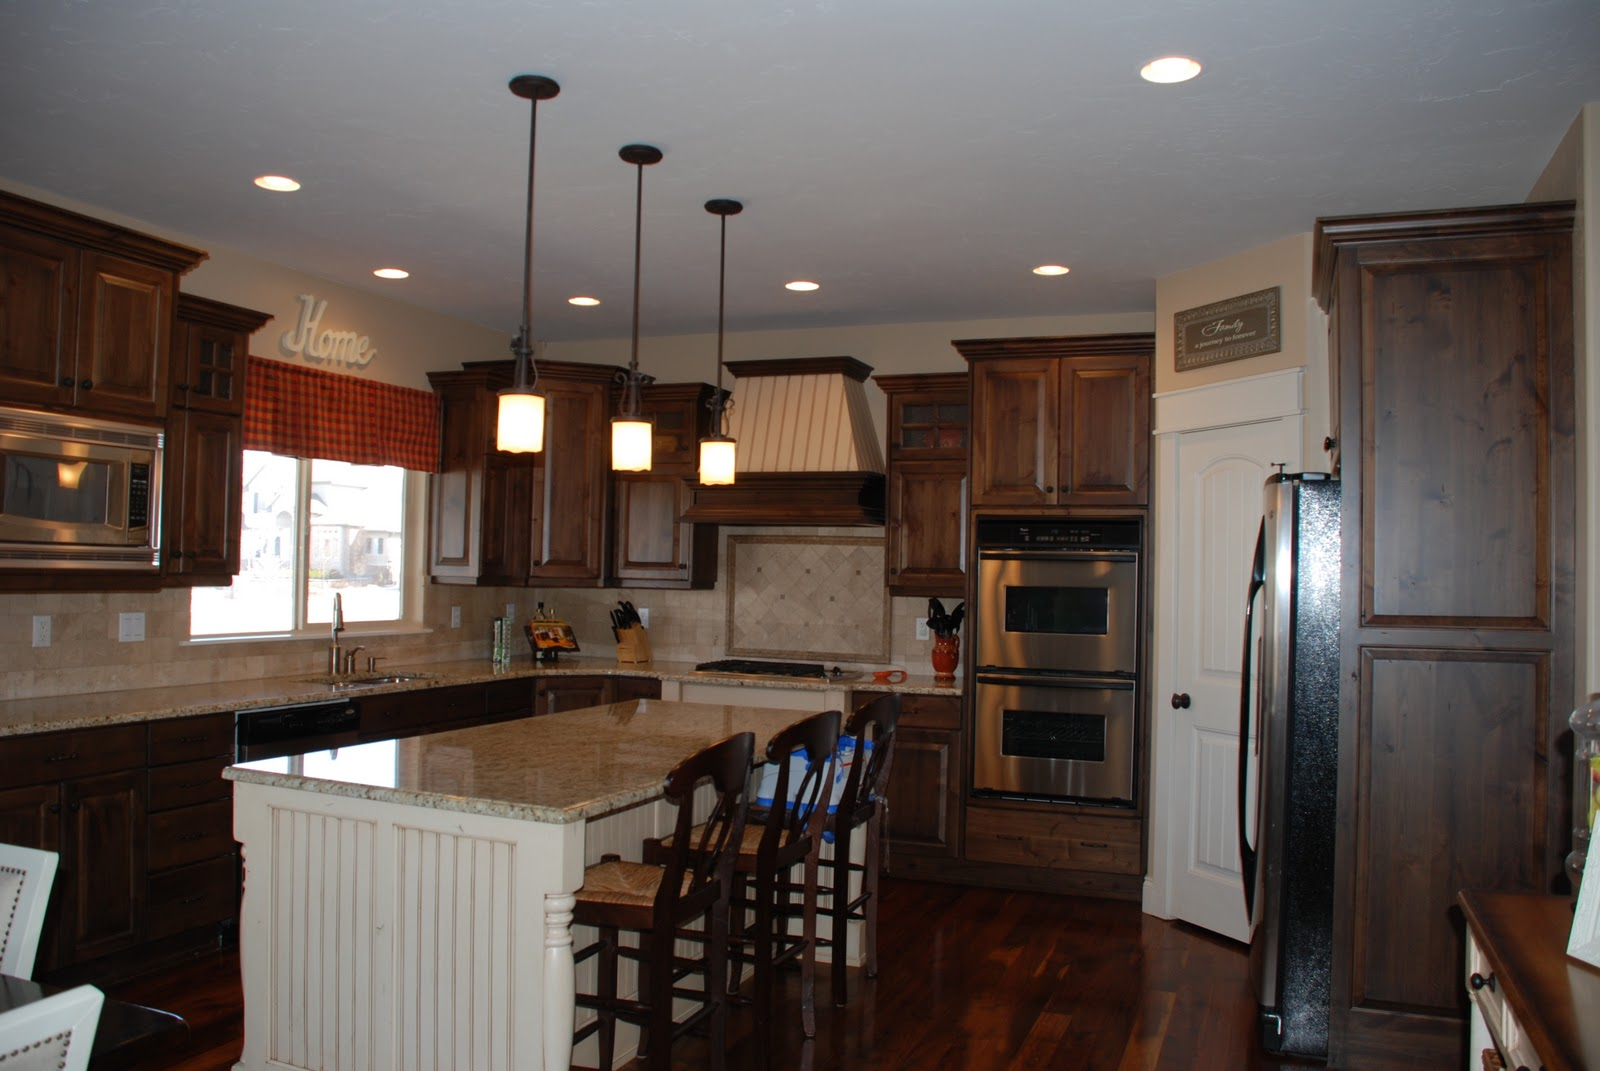 While I Have Always Loved The Craftsmanship And Design Of My Cabinets Was Growing Tired How Dark Kitchen Felt Deep Color Knotty